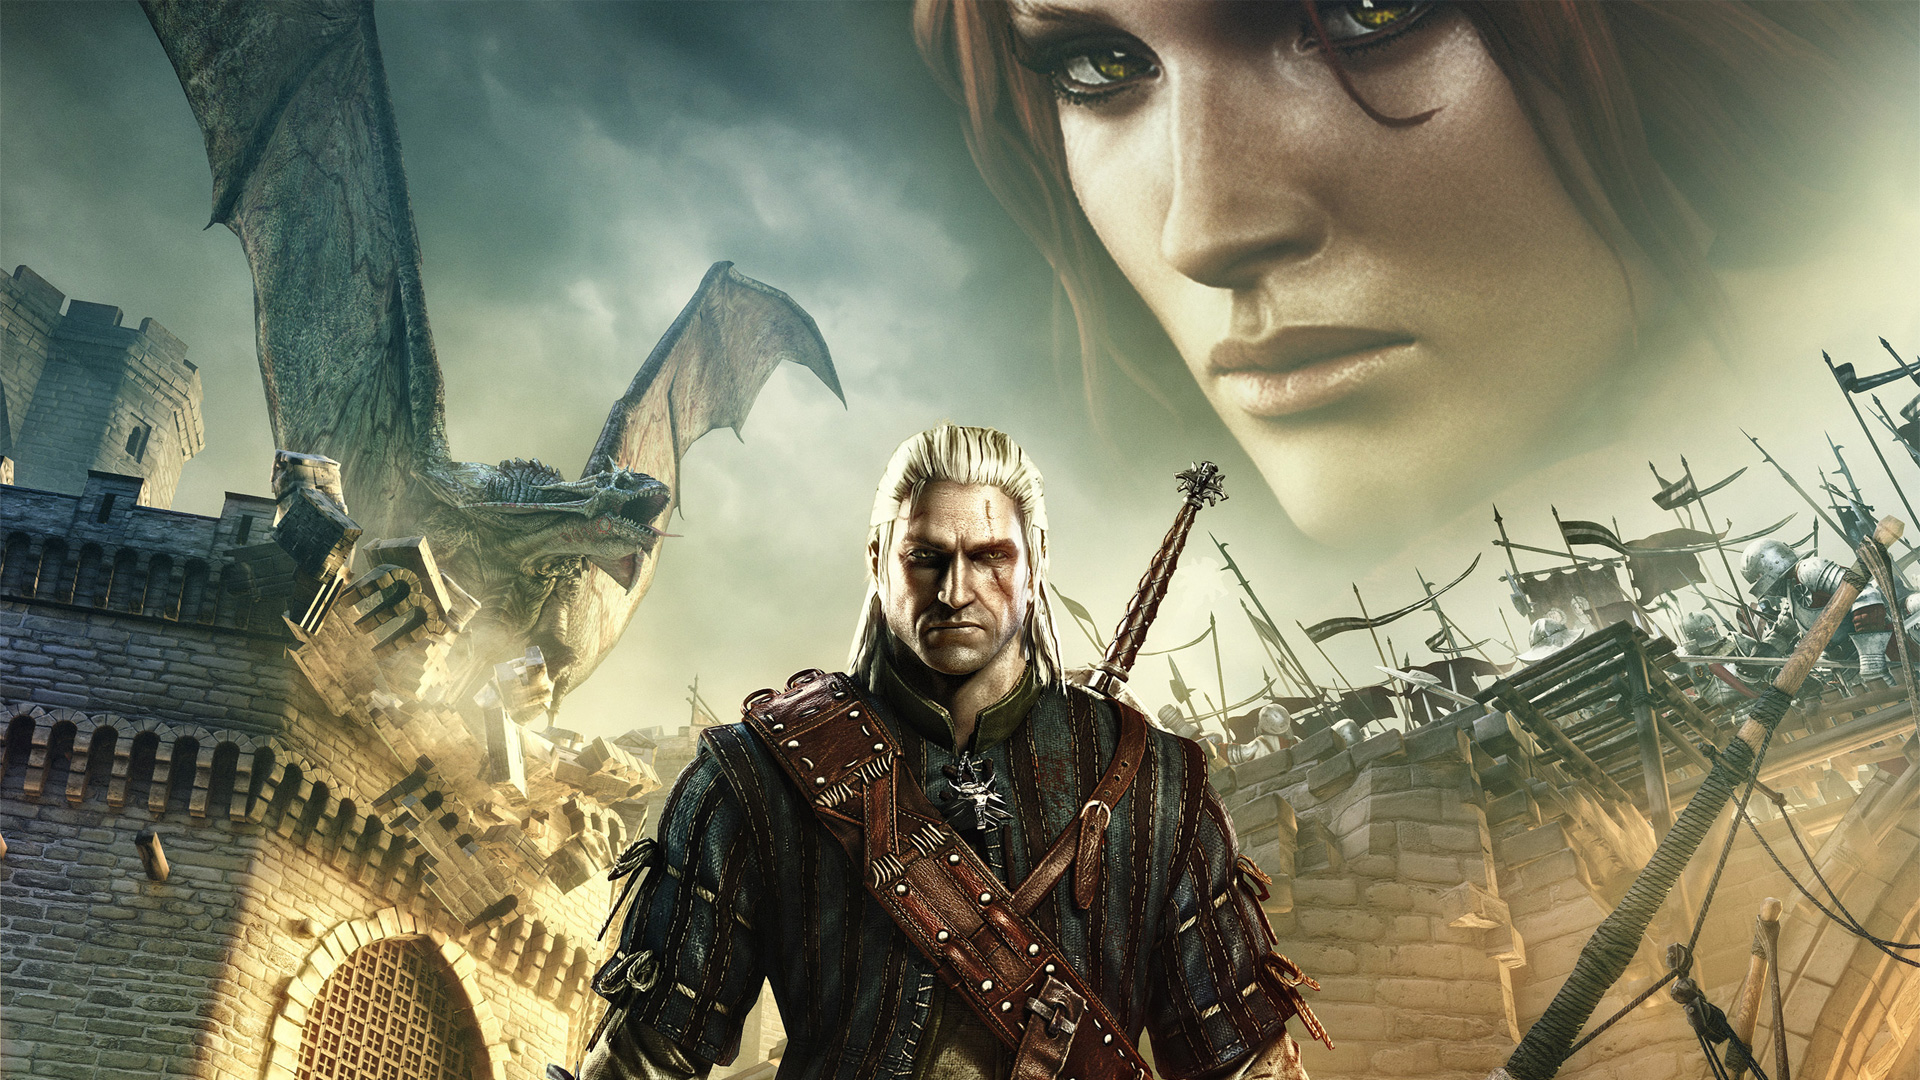 Geralt and the siege Wallpaper from The Witcher 2: Assassins of Kings